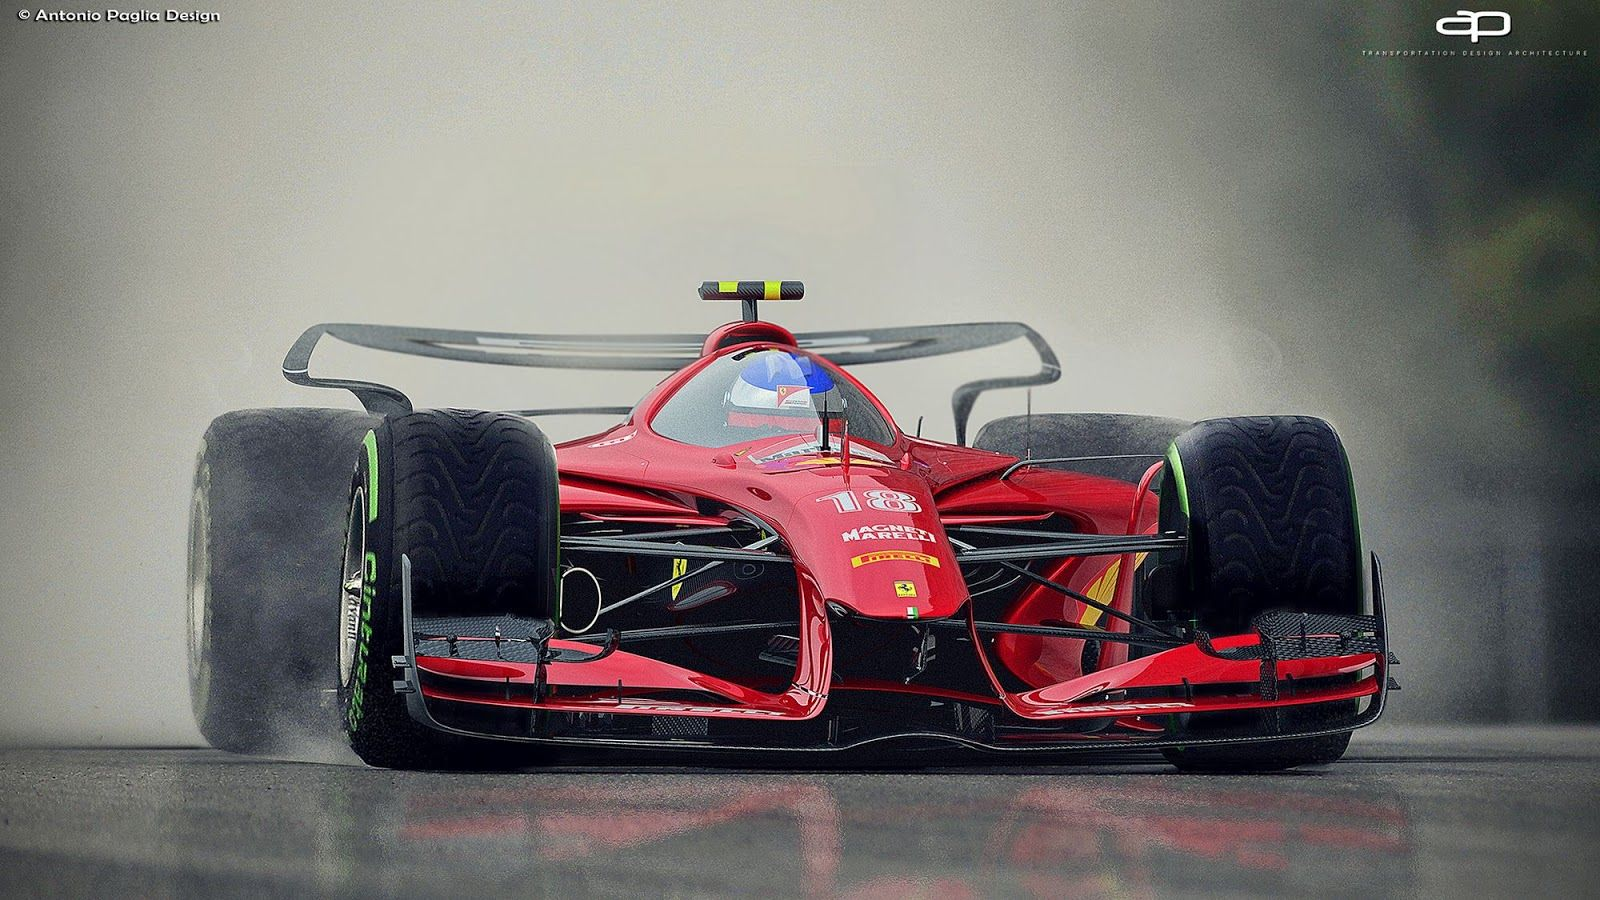 2025 F1 Cars Look The Business With Jet Figther Cockpits Carscoops Formula 1 Car Futuristic Cars Concept Cars